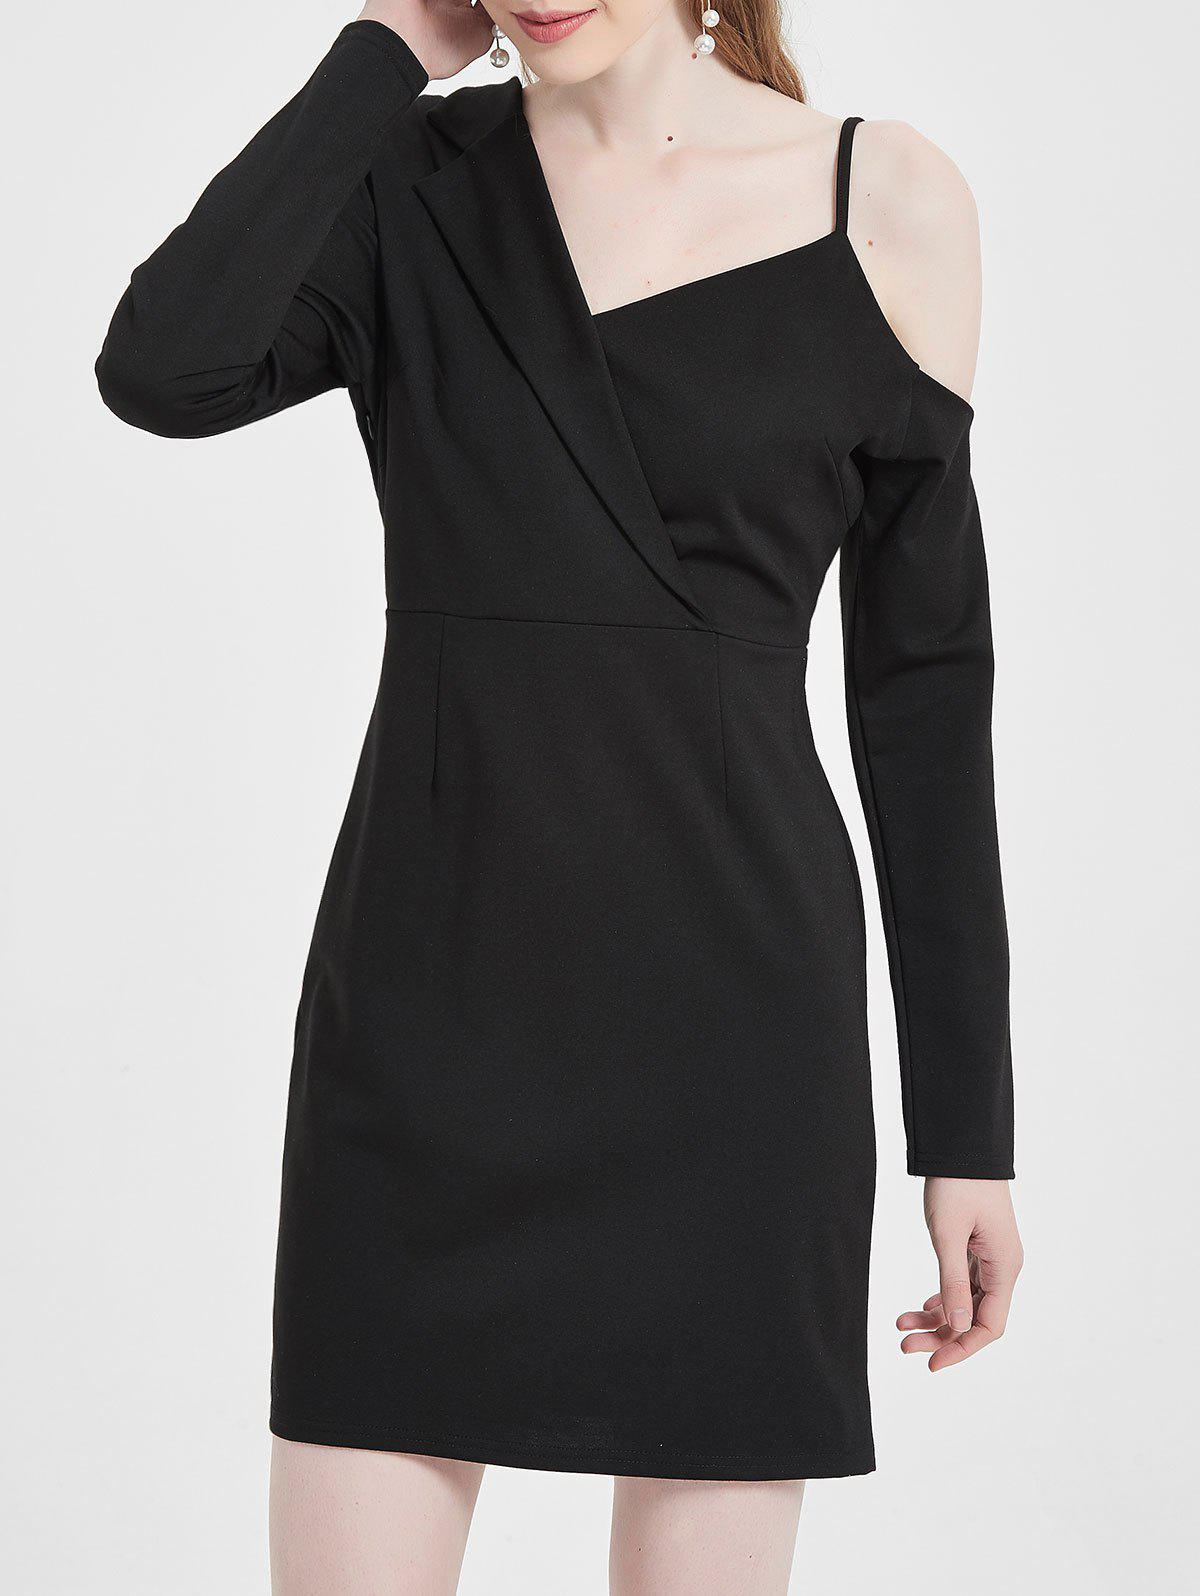 Affordable Skew Neck Mini Blazer Dress